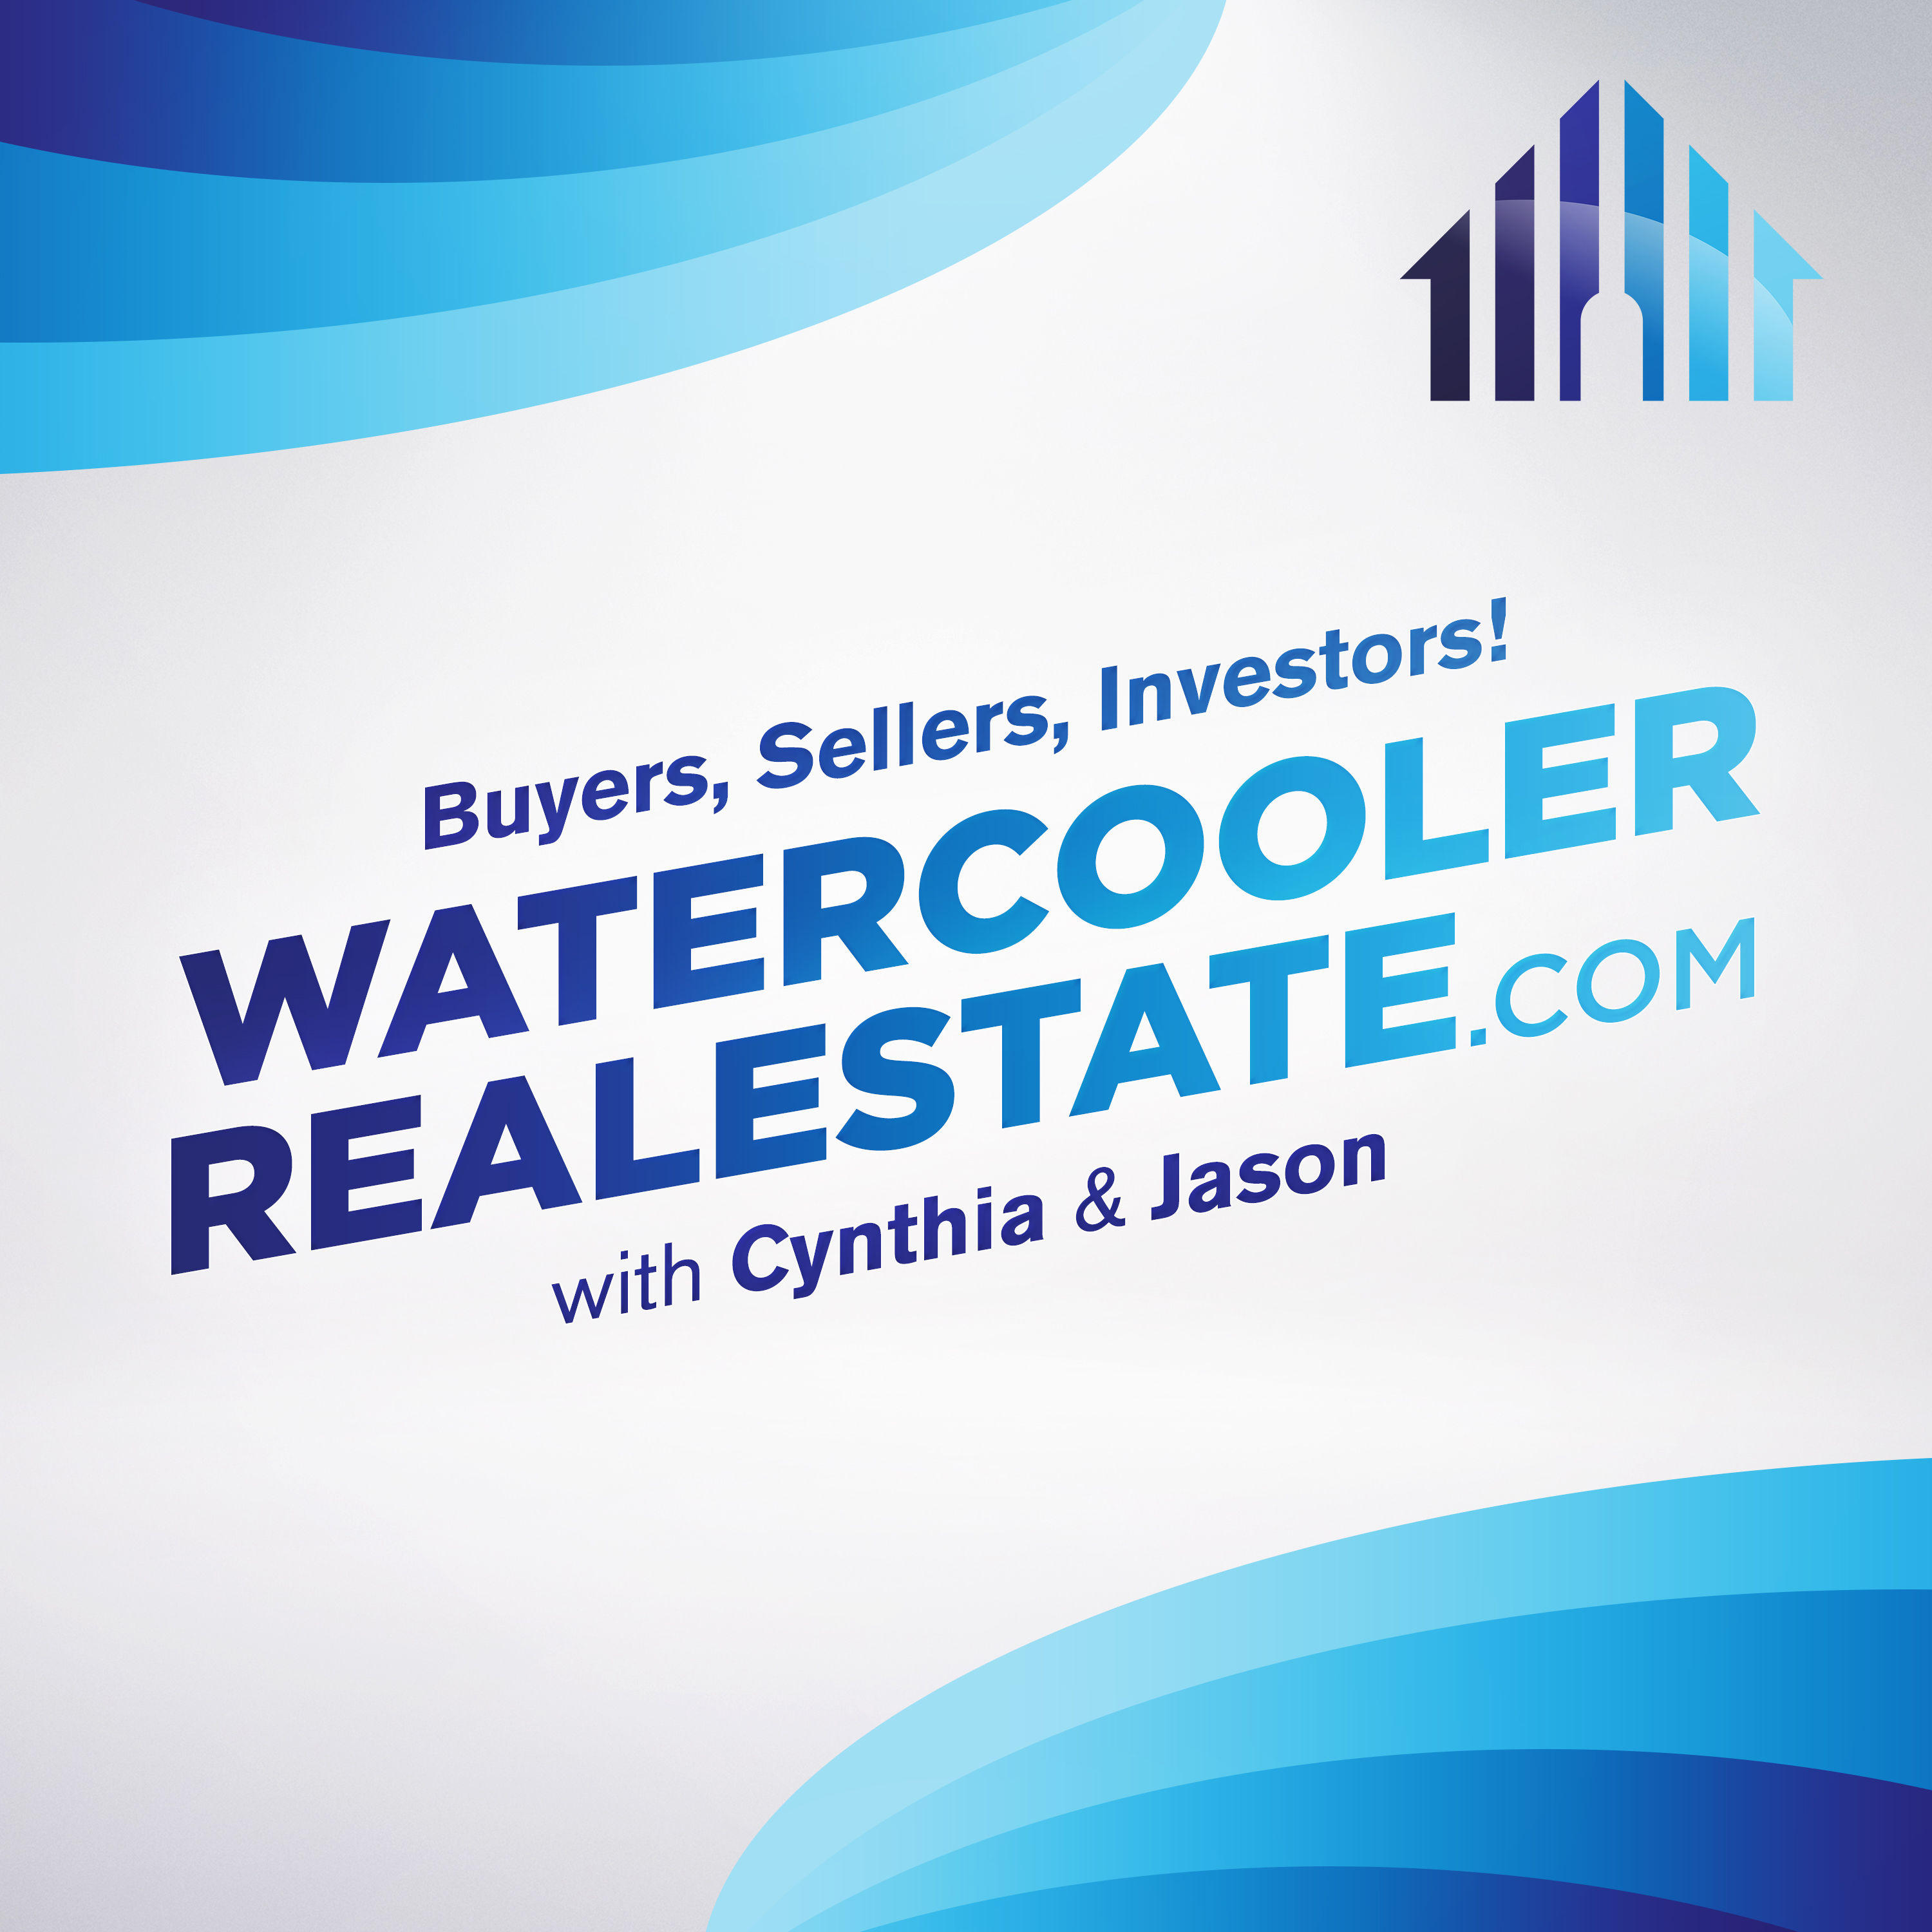 WaterCoolerRealEstate.com